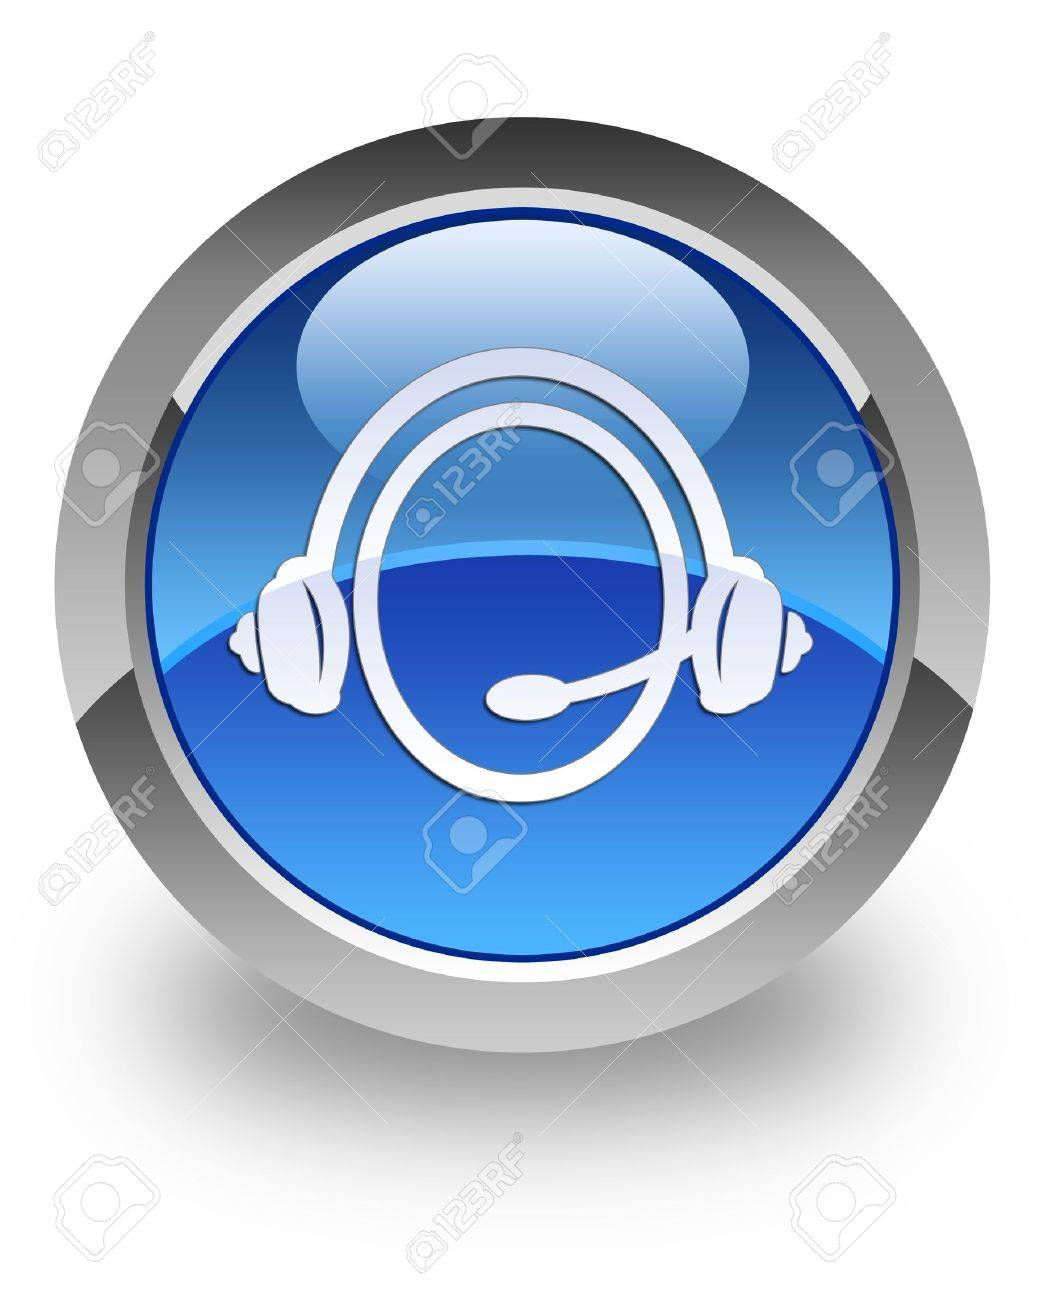 Customer Service icon on glossy blue round button Stock Photo - 14516134